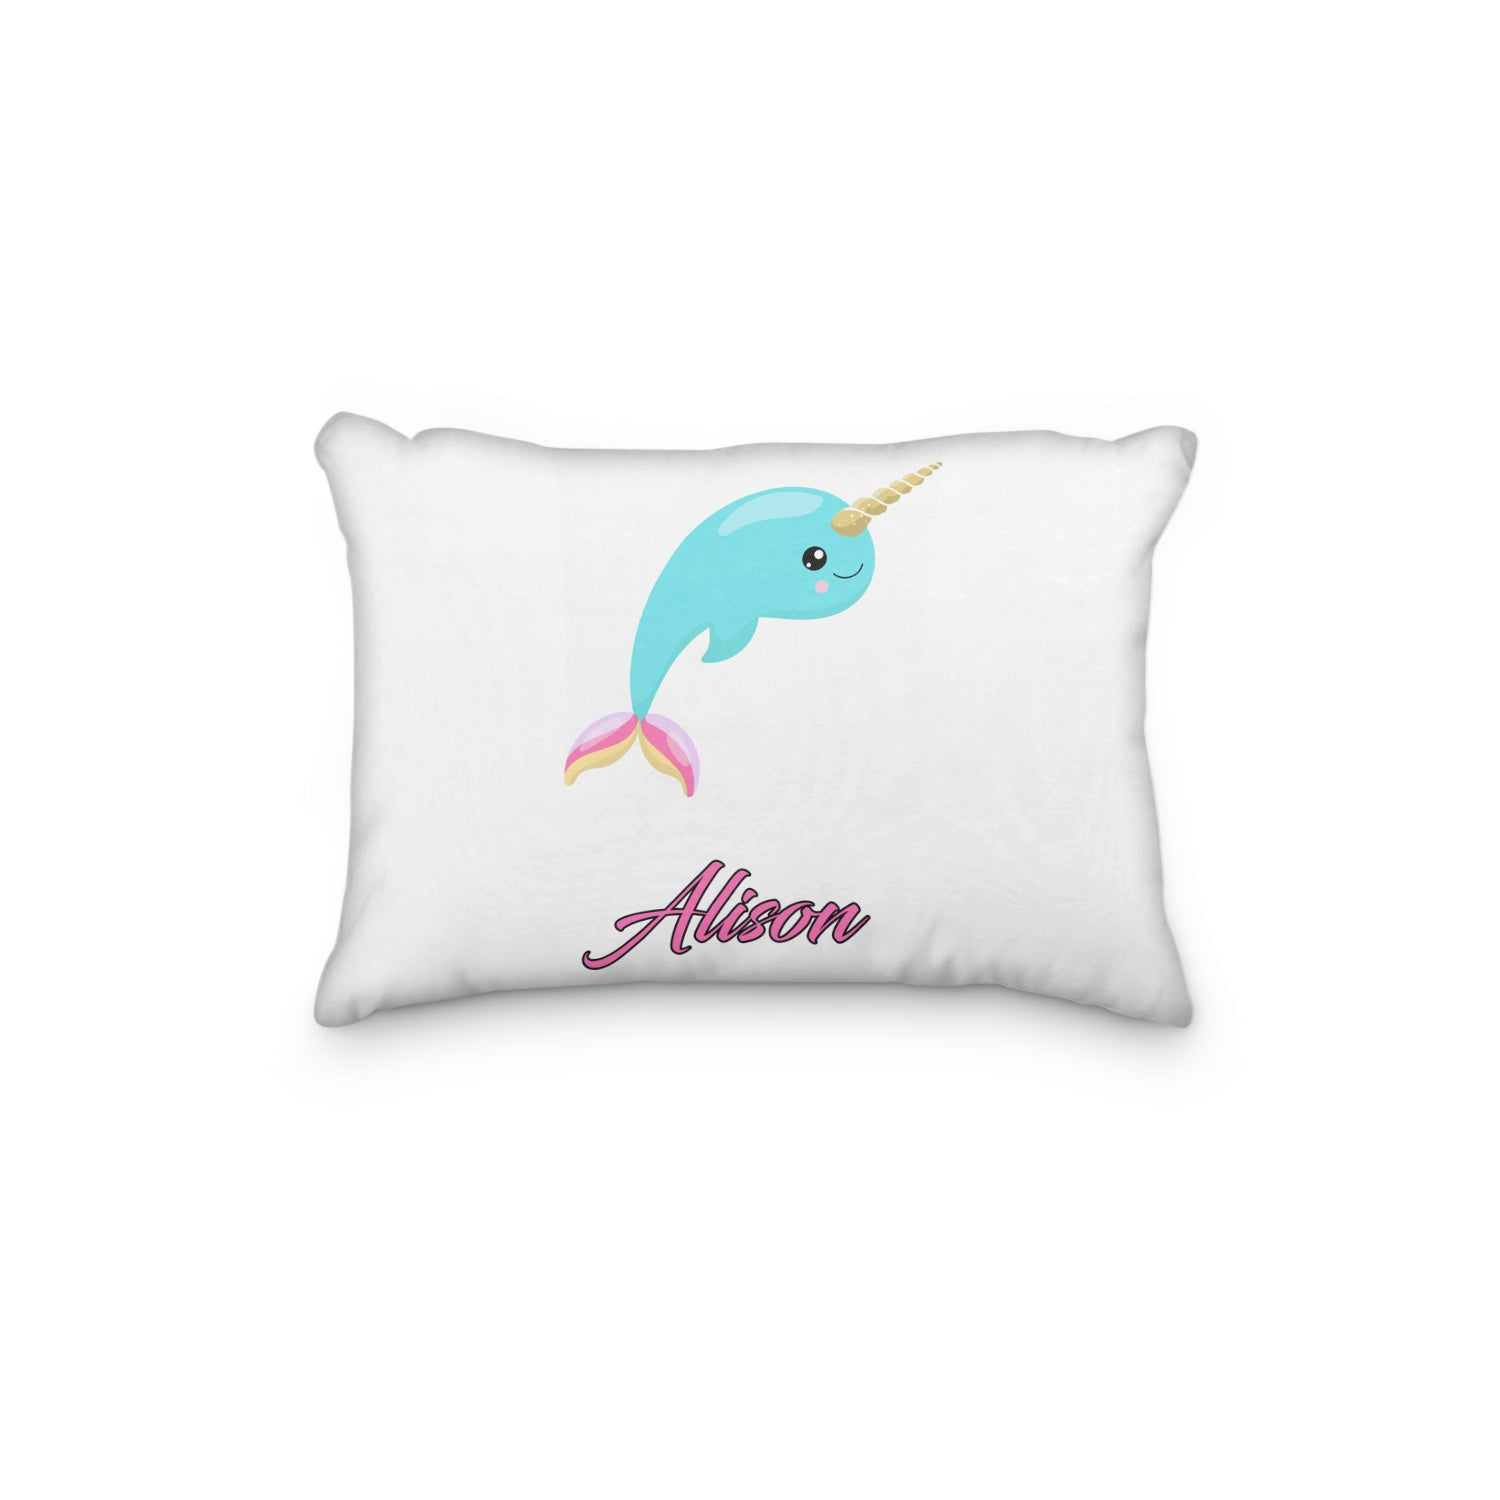 Narwhale Unicorn Rainbow Horn Personalized Pillowcase - Incandescently